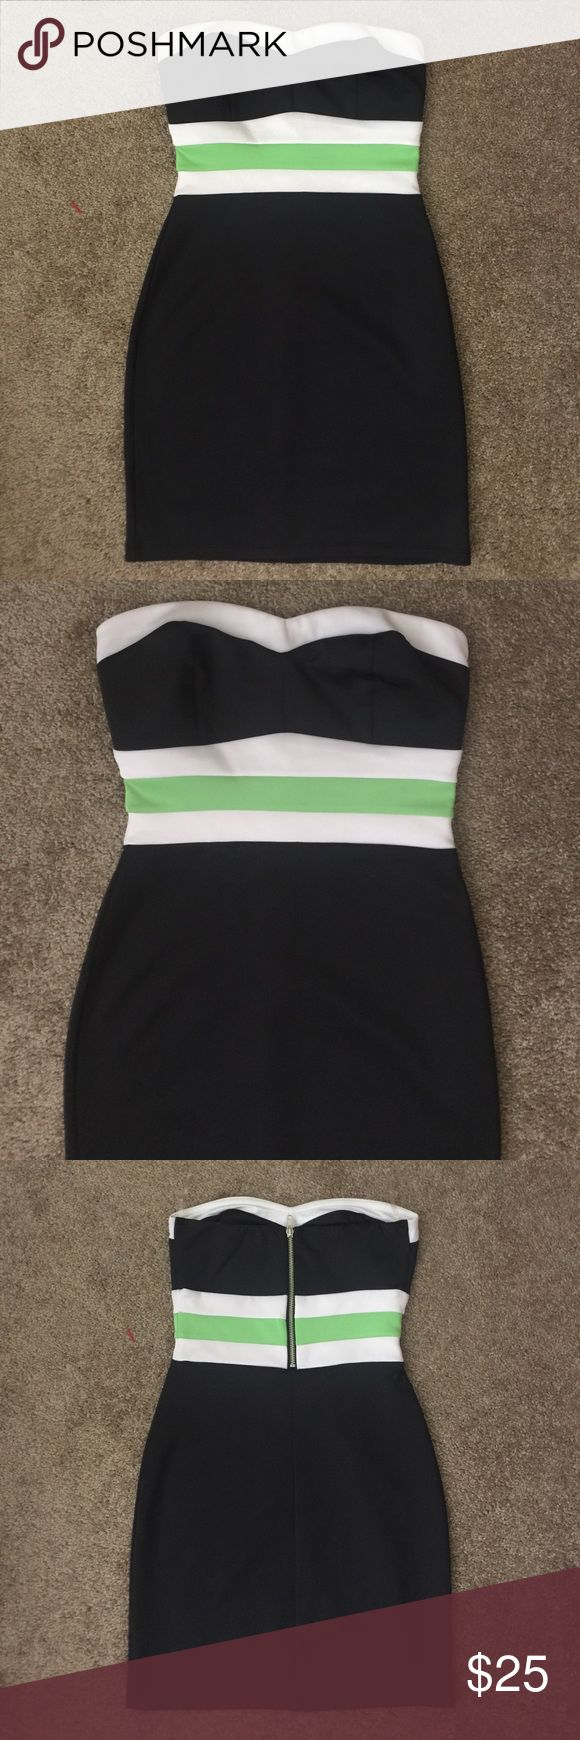 "Wet Seal Tube Top Dress Size Small Length 24"". Worn once. Still brand new.🎈Make an offer 🎈accepts most offers Wet Seal Dresses Strapless"